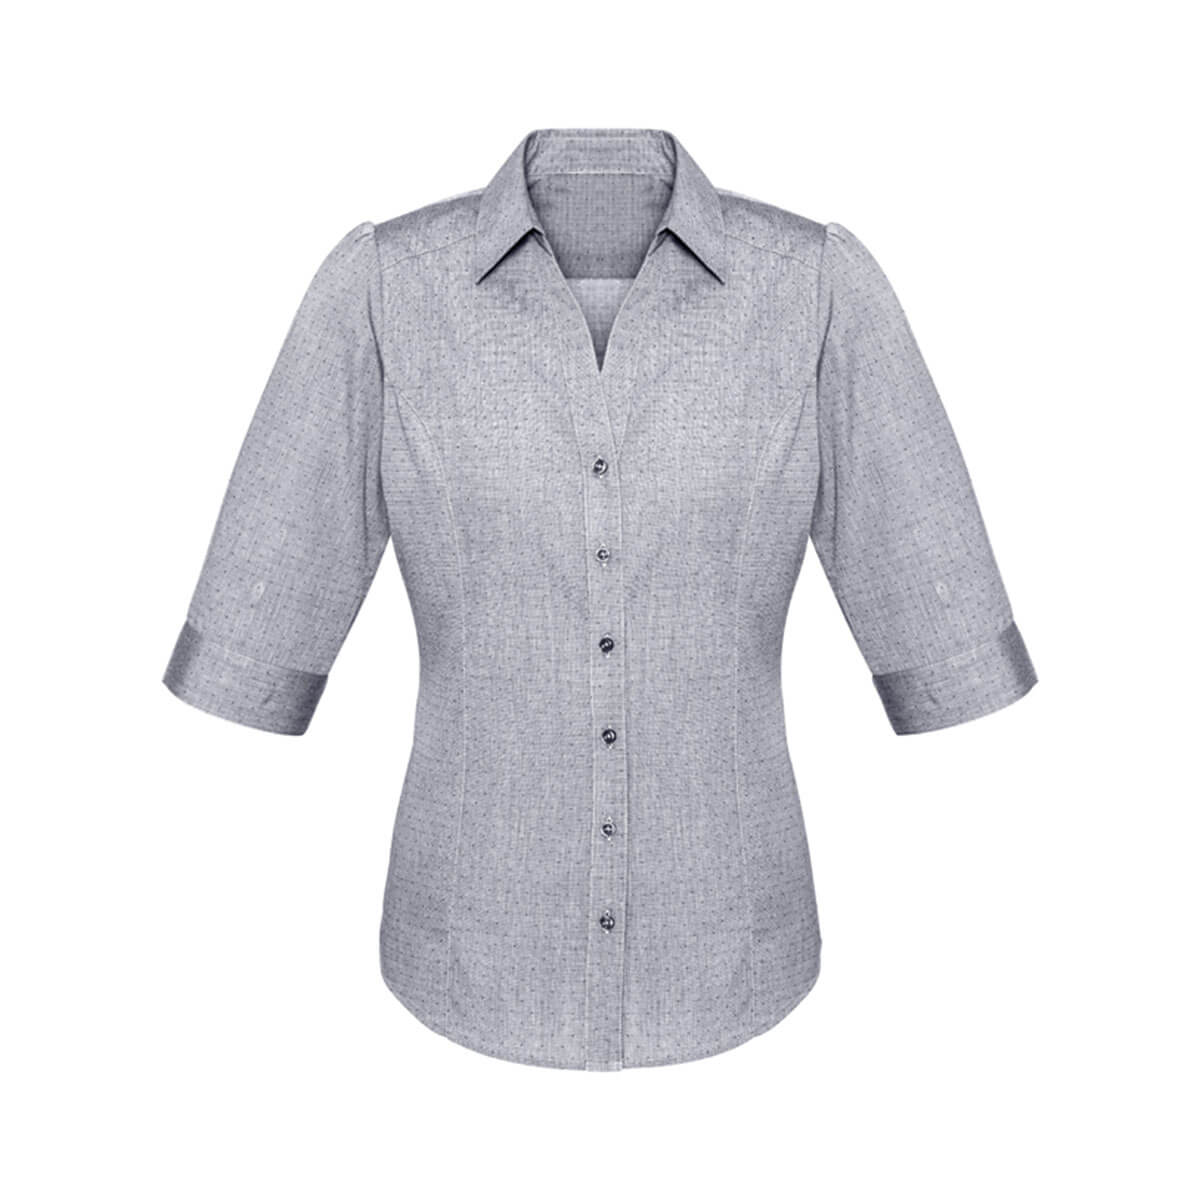 Ladies Trend 3/4 Sleeve Shirt-Silver